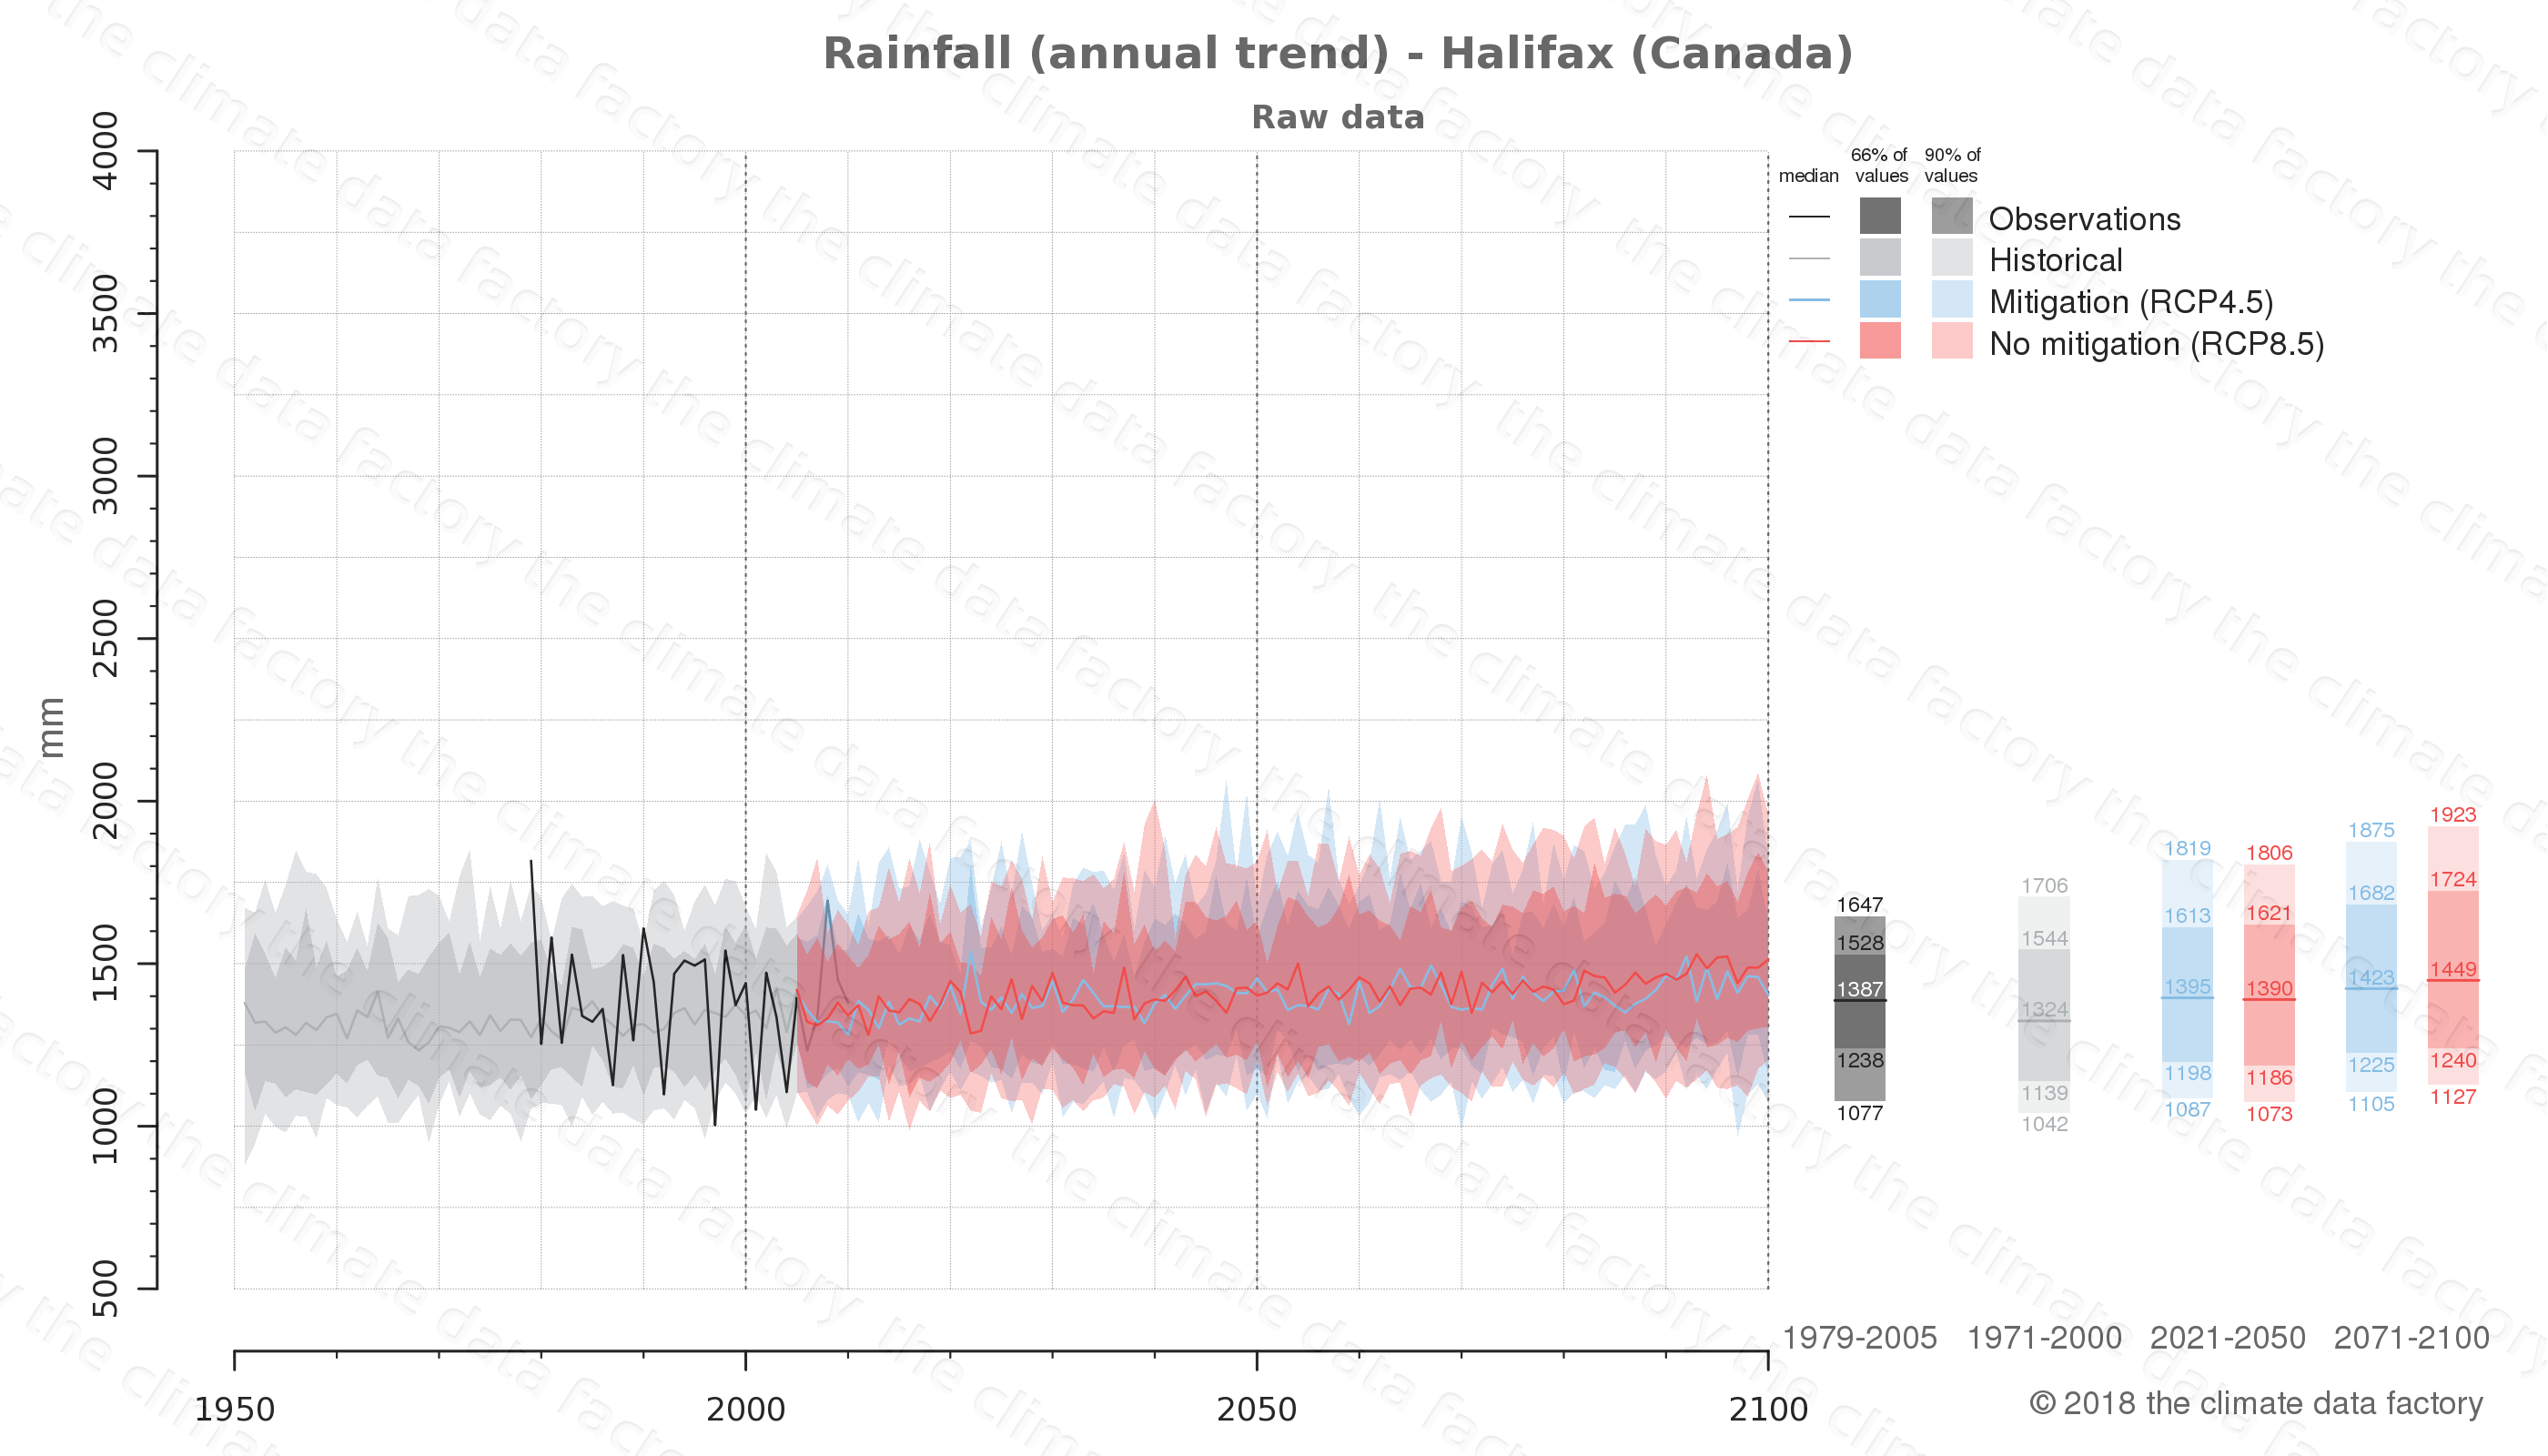 climate change data policy adaptation climate graph city data rainfall halifax canada